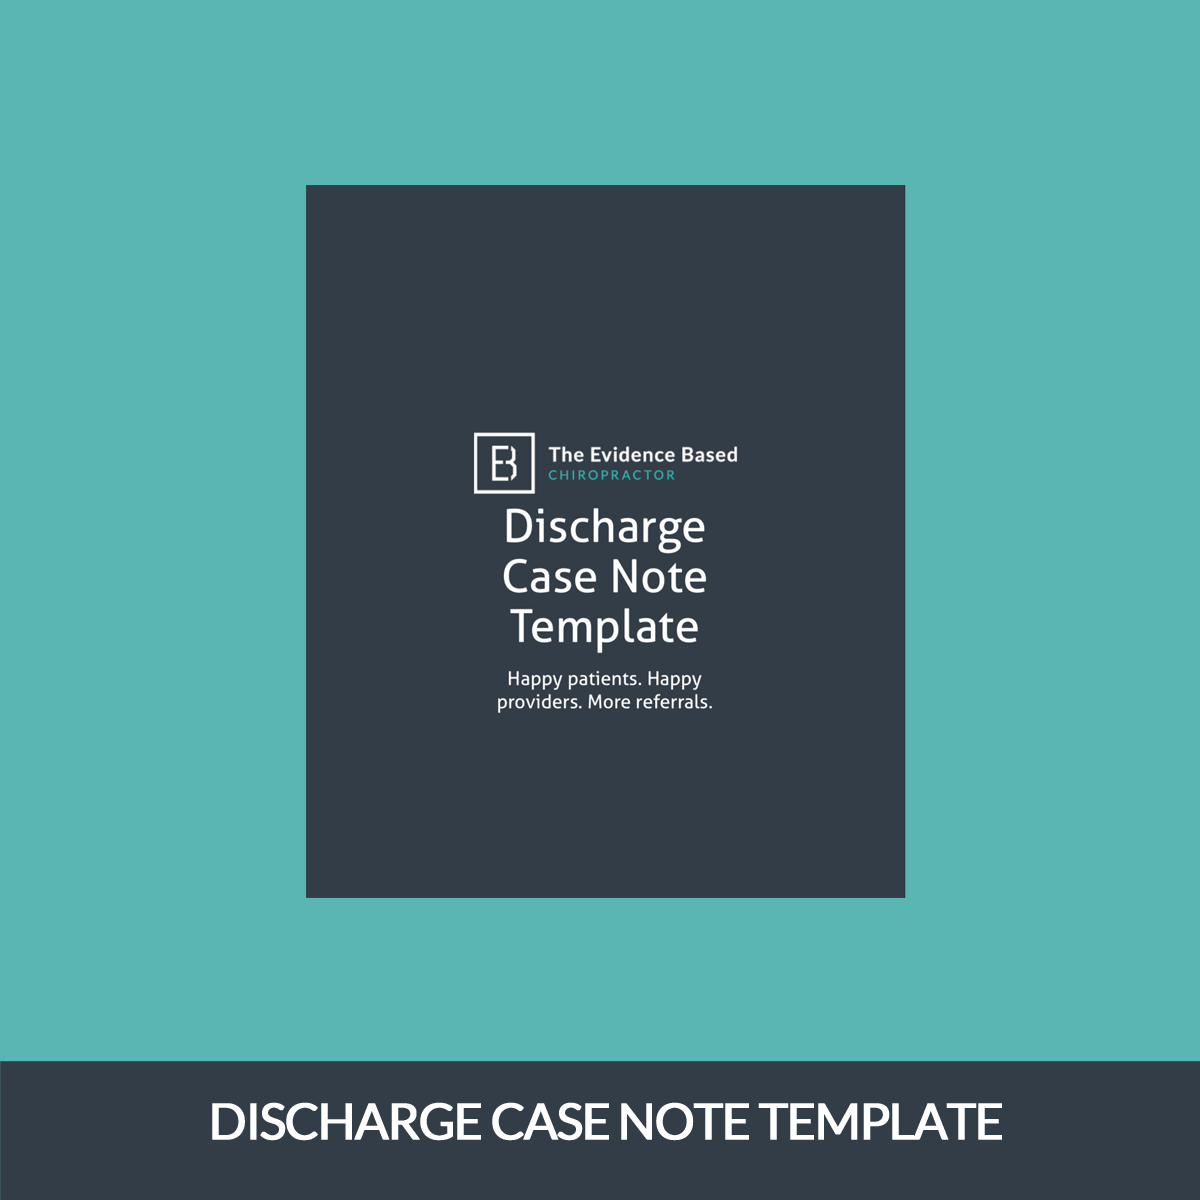 DISCHARGE NOTE TEMPLATE-squashed.png